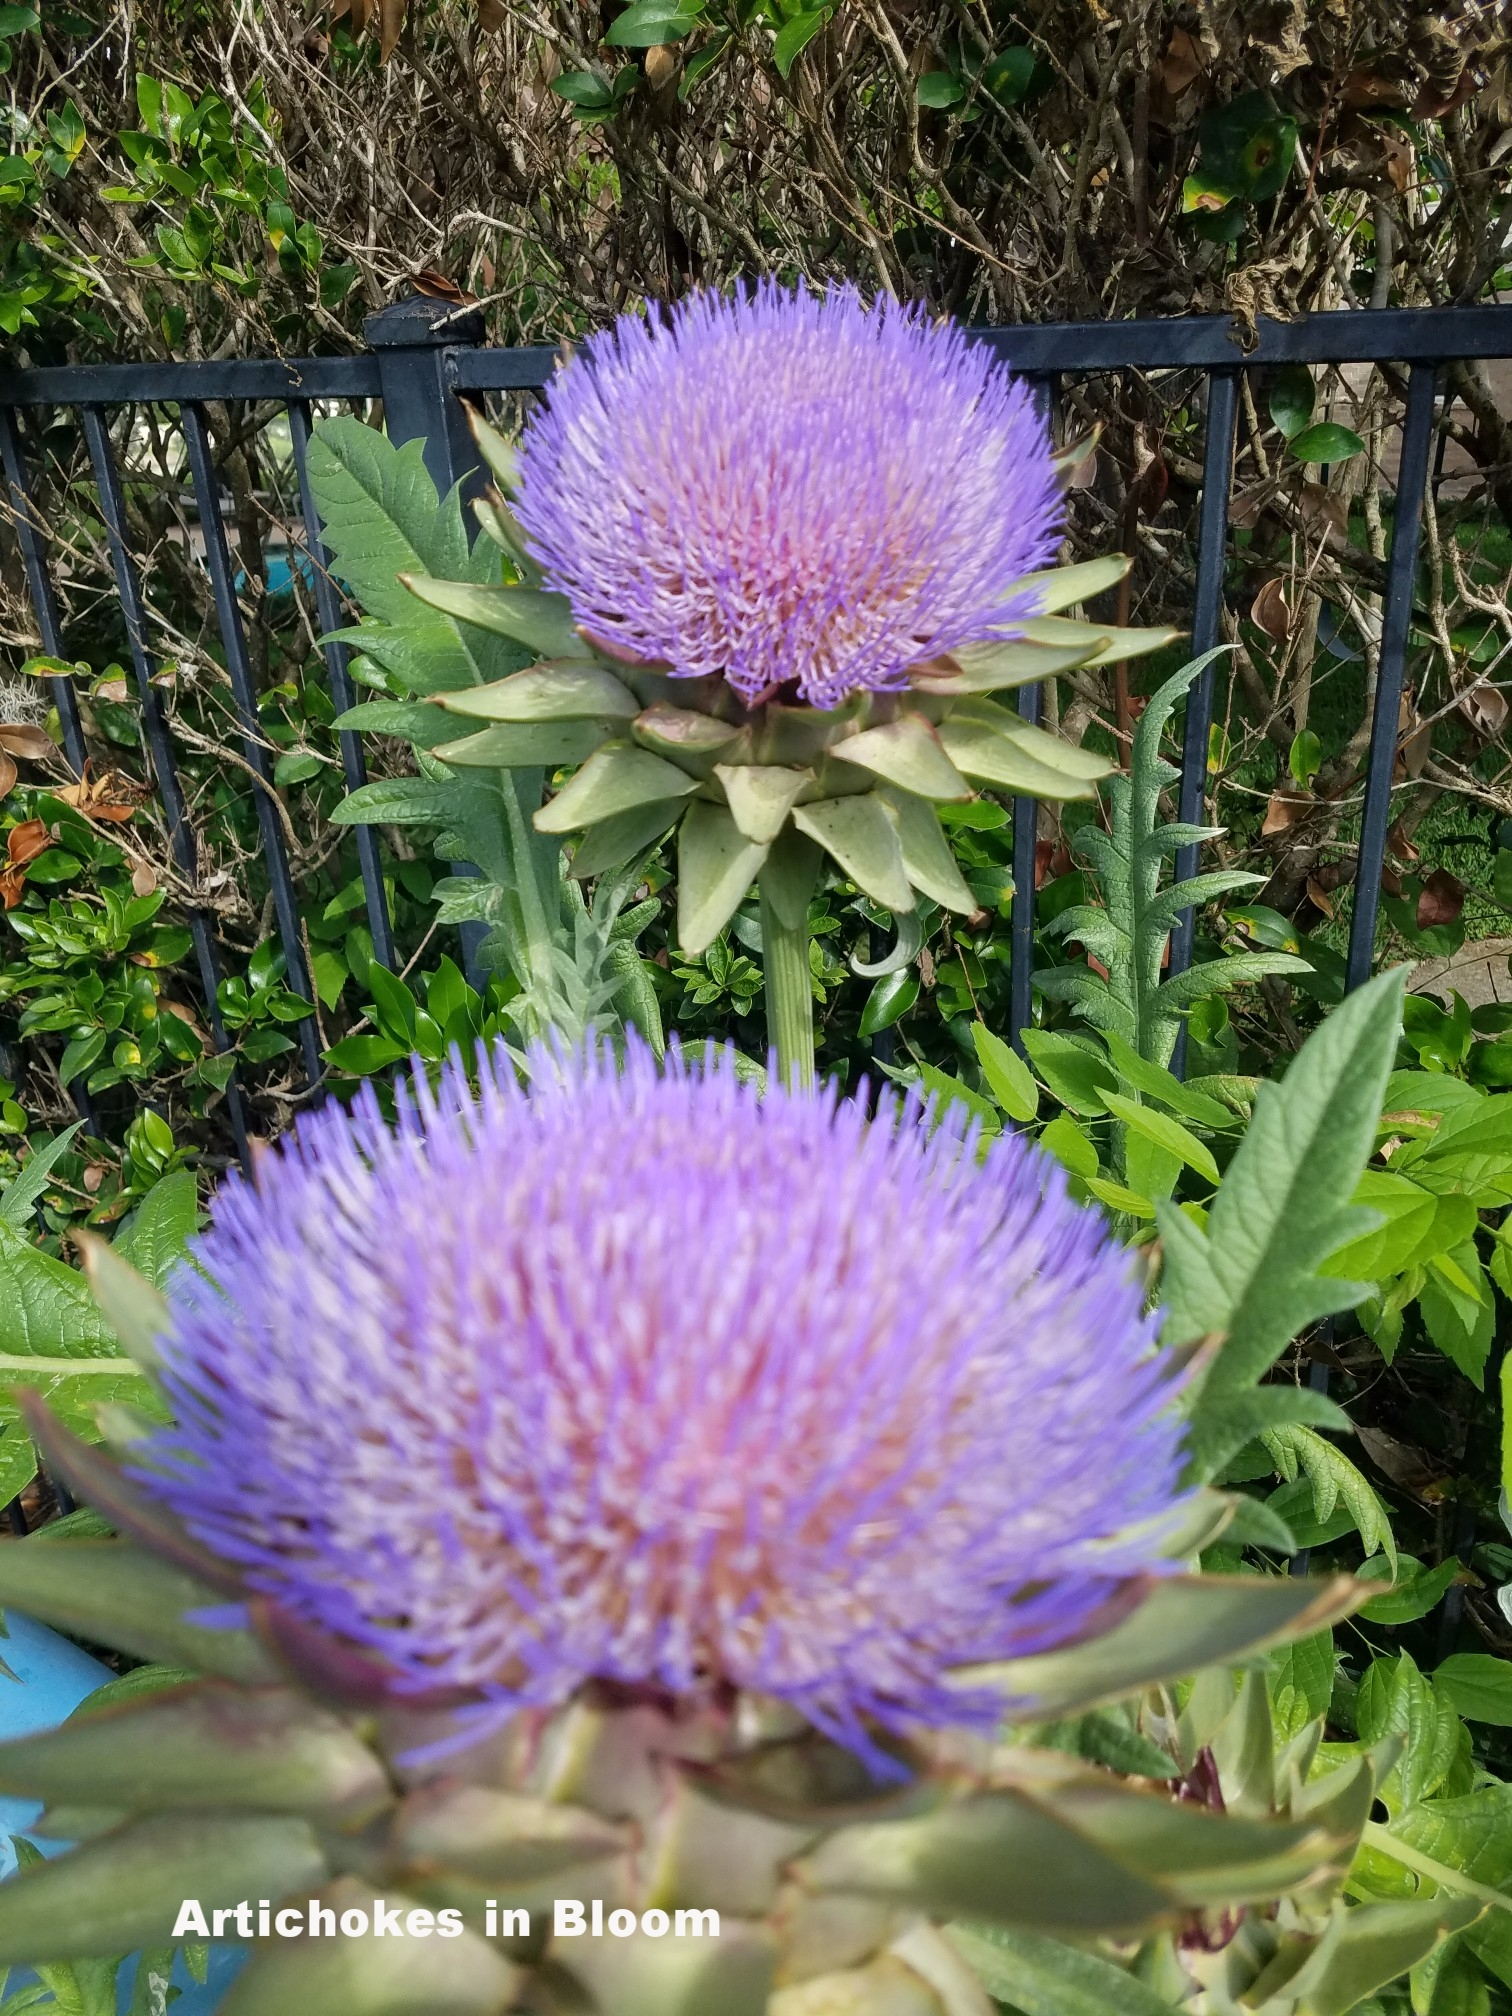 Artichokes in Bloom